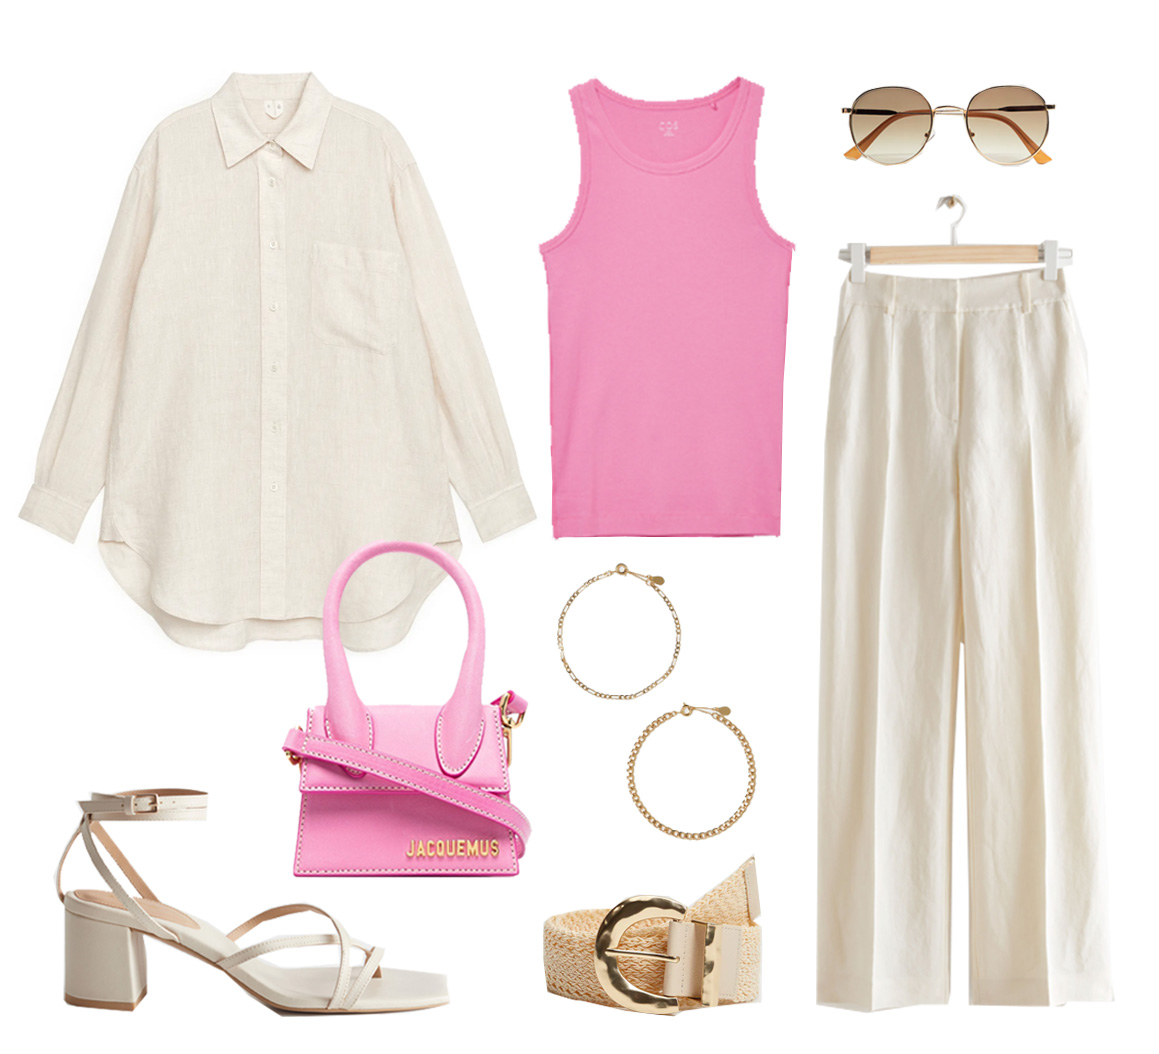 linen trousers outfit idea summer 2021